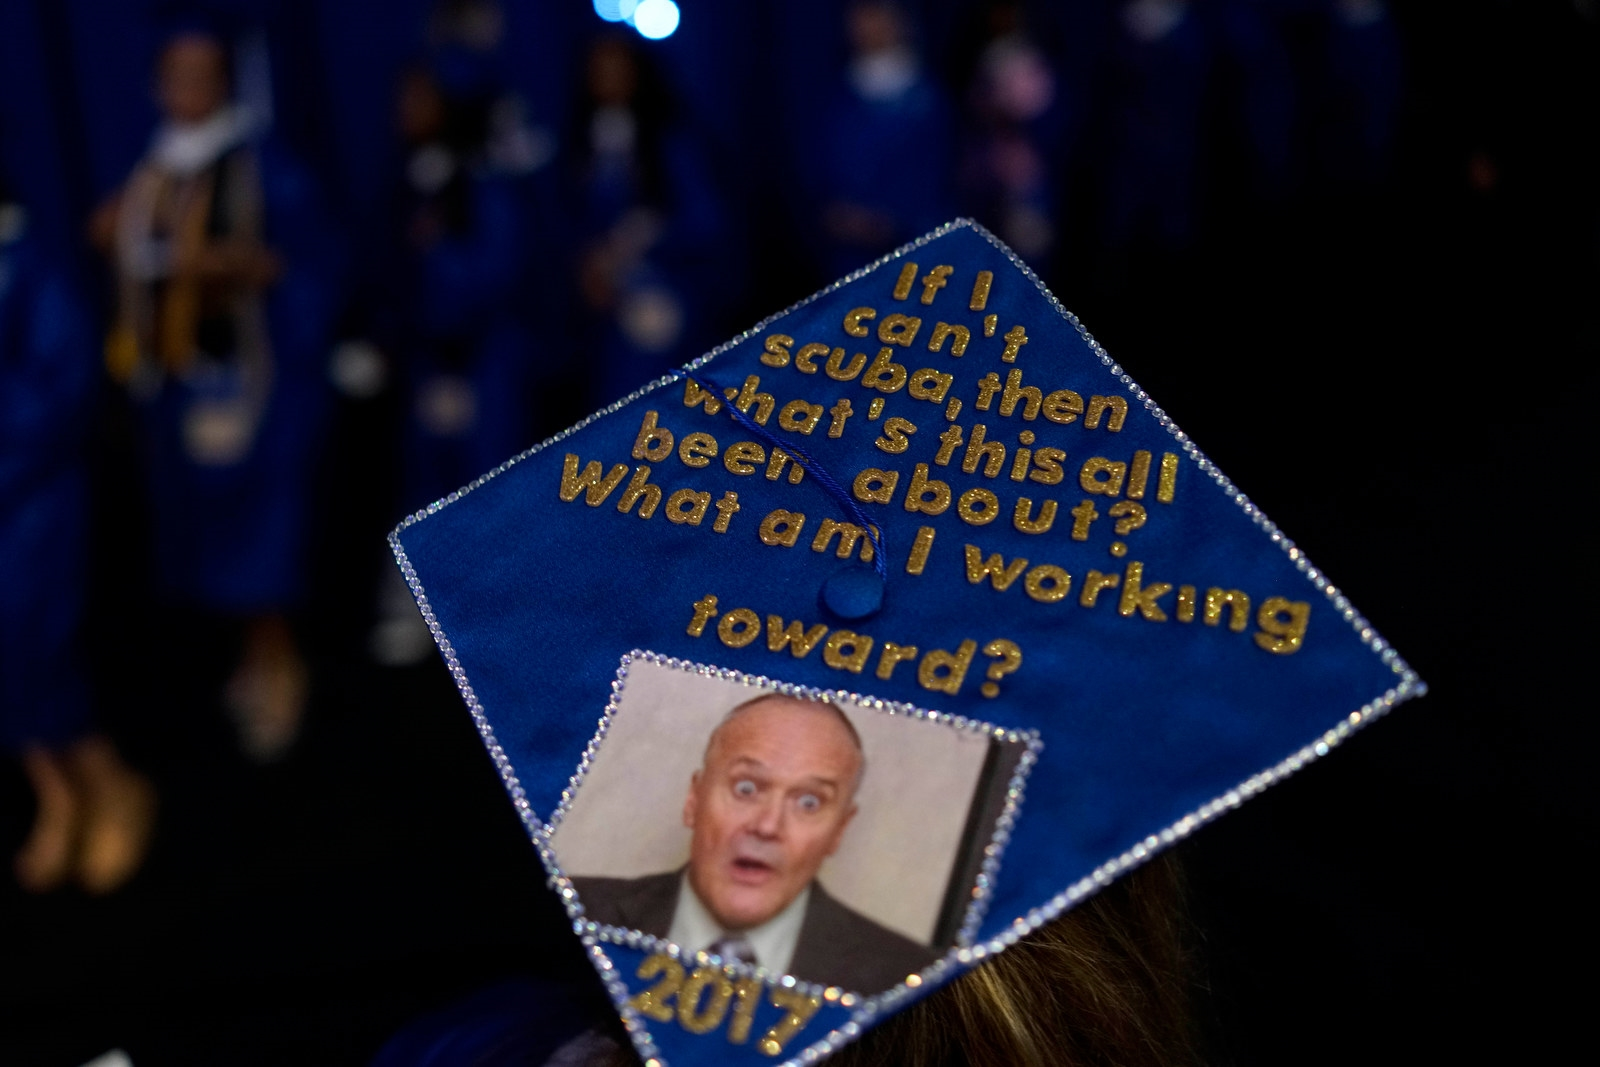 Mortarboard art worn by graduates at the University at Buffalo commencement, Sunday morning, May 21, 2017.